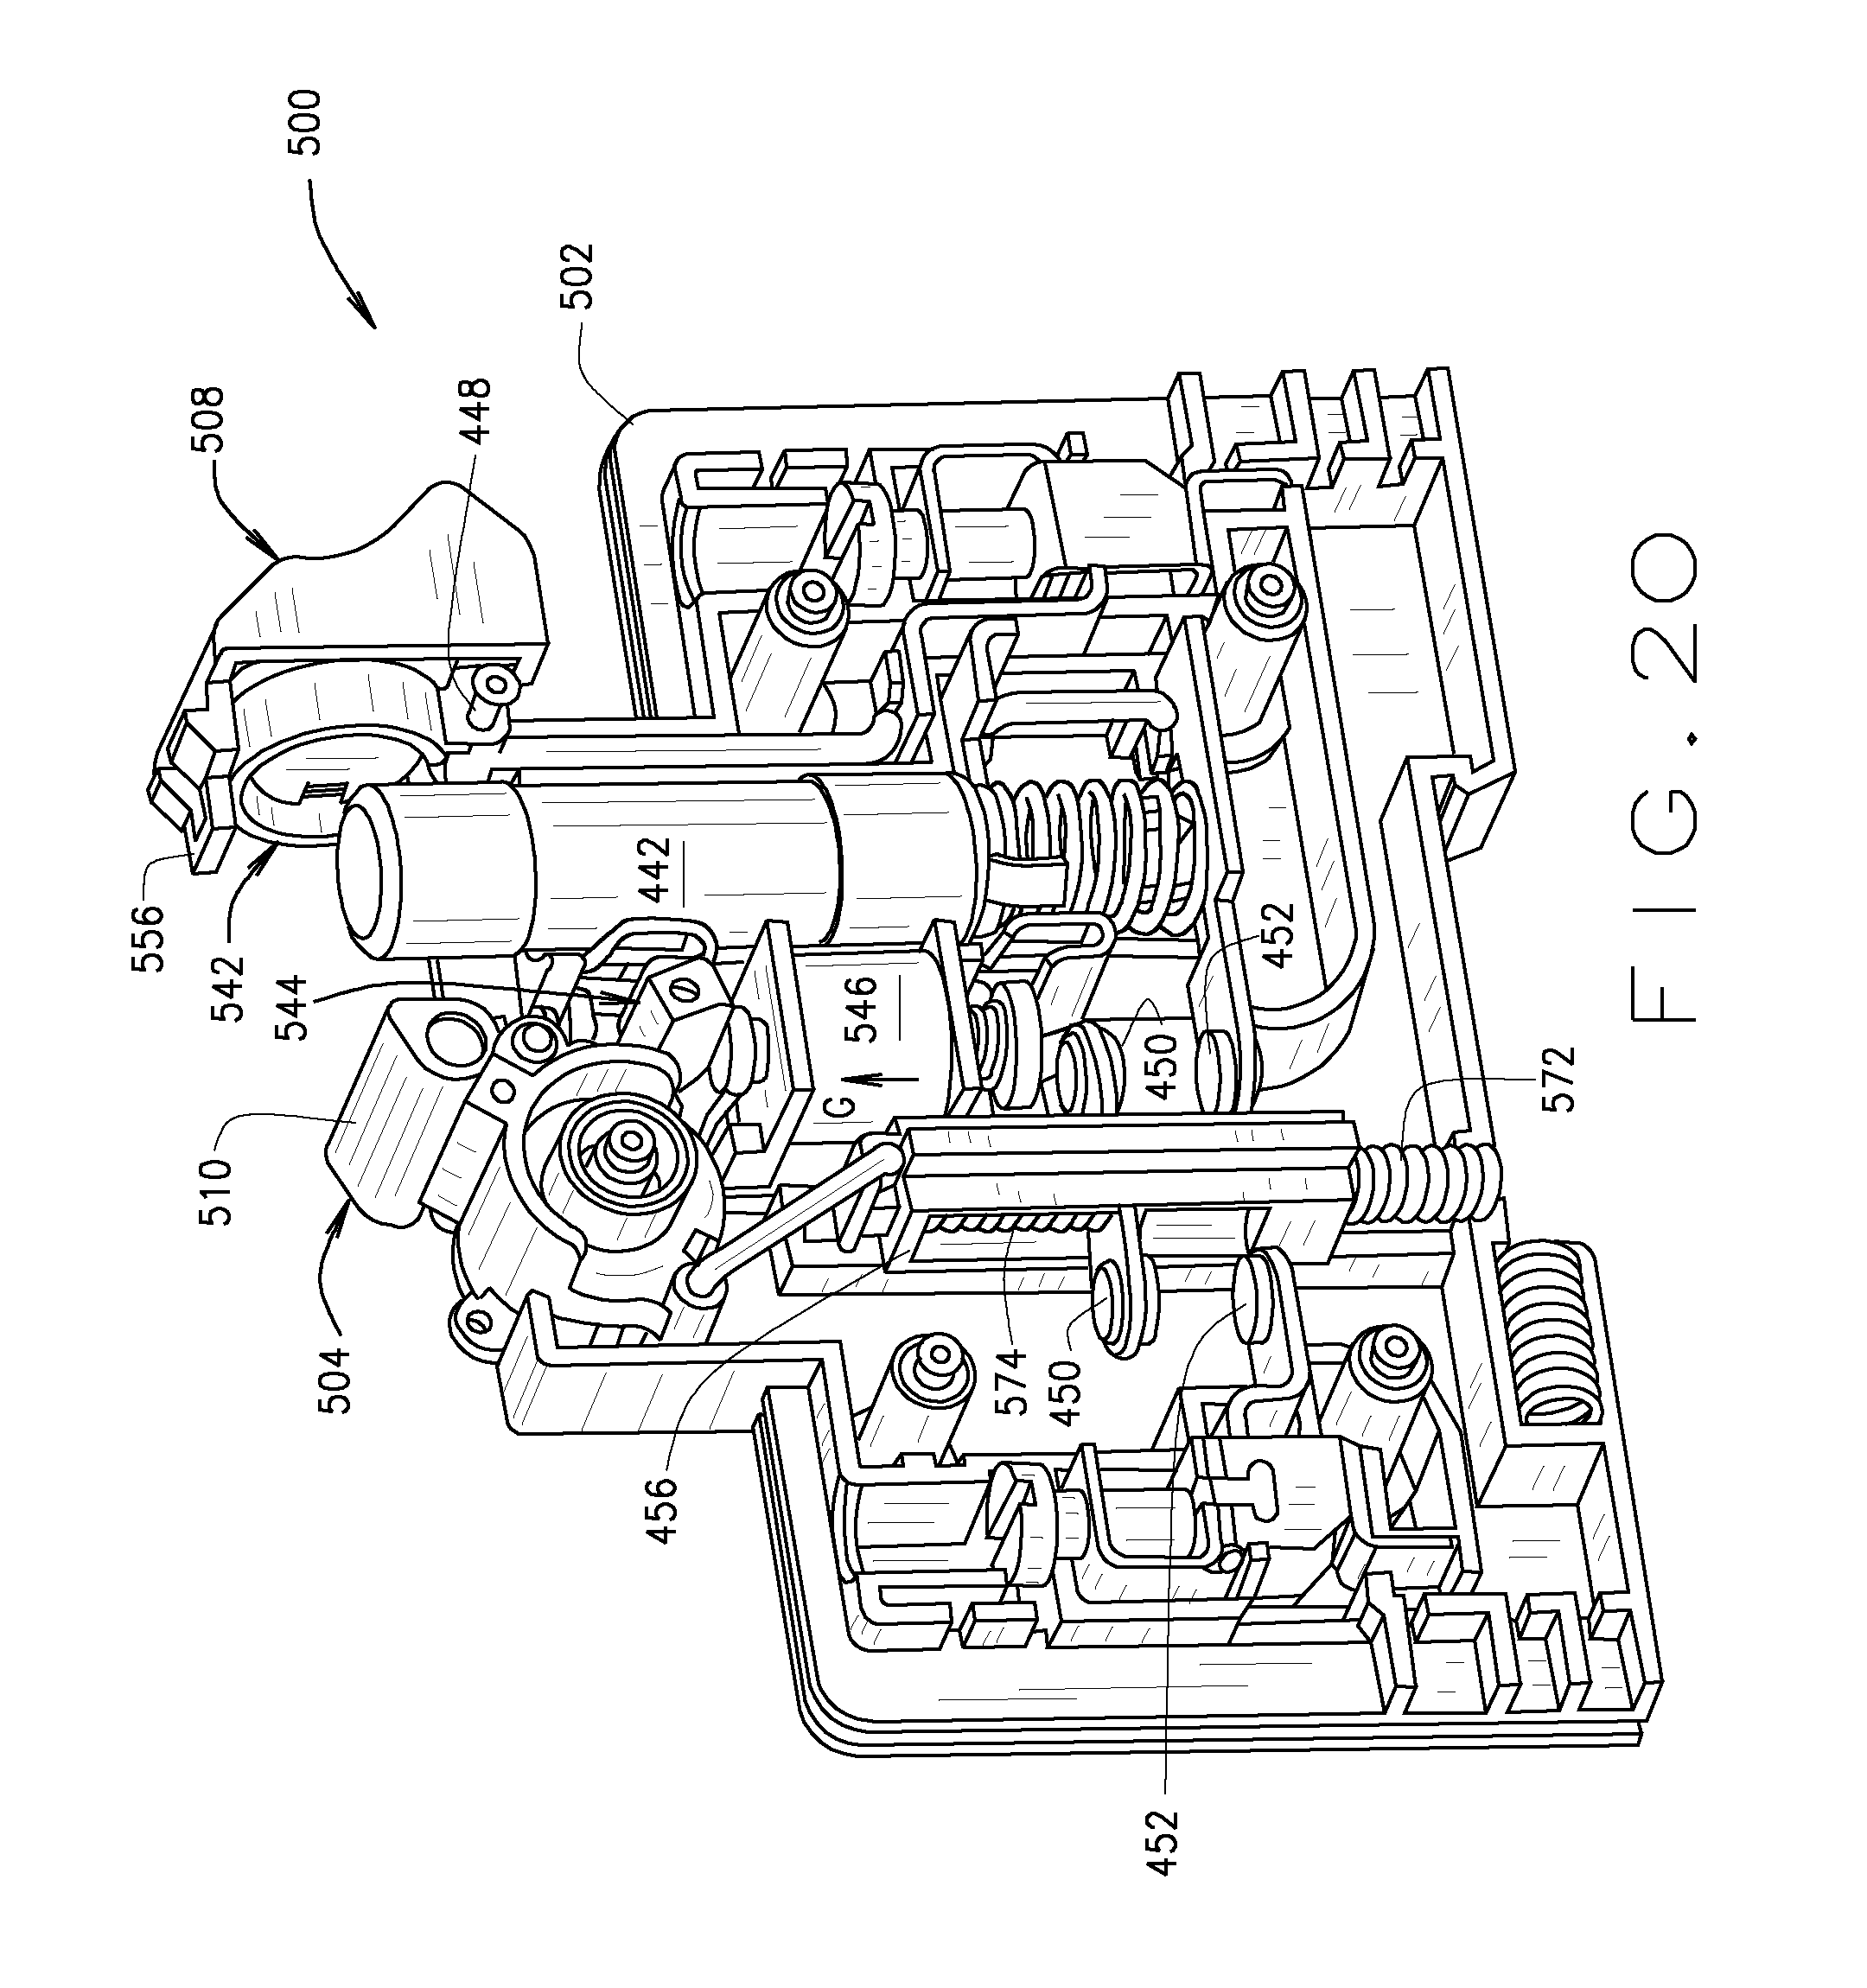 patent us20090295533 - fusible switching disconnect modules and devices